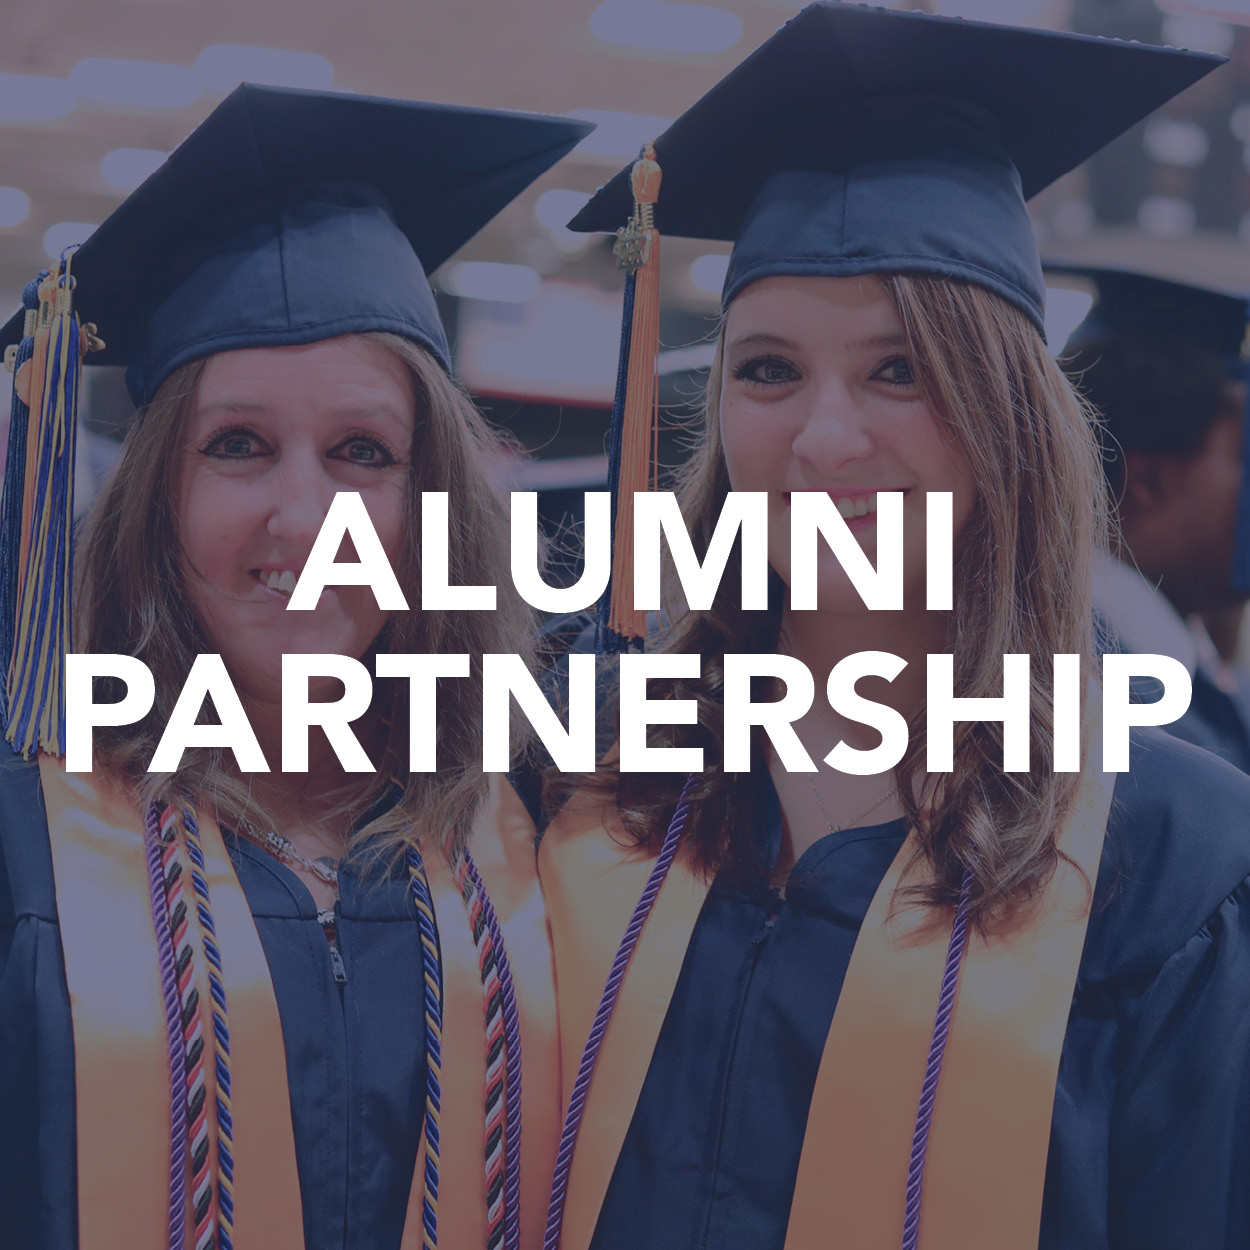 alumni partnership